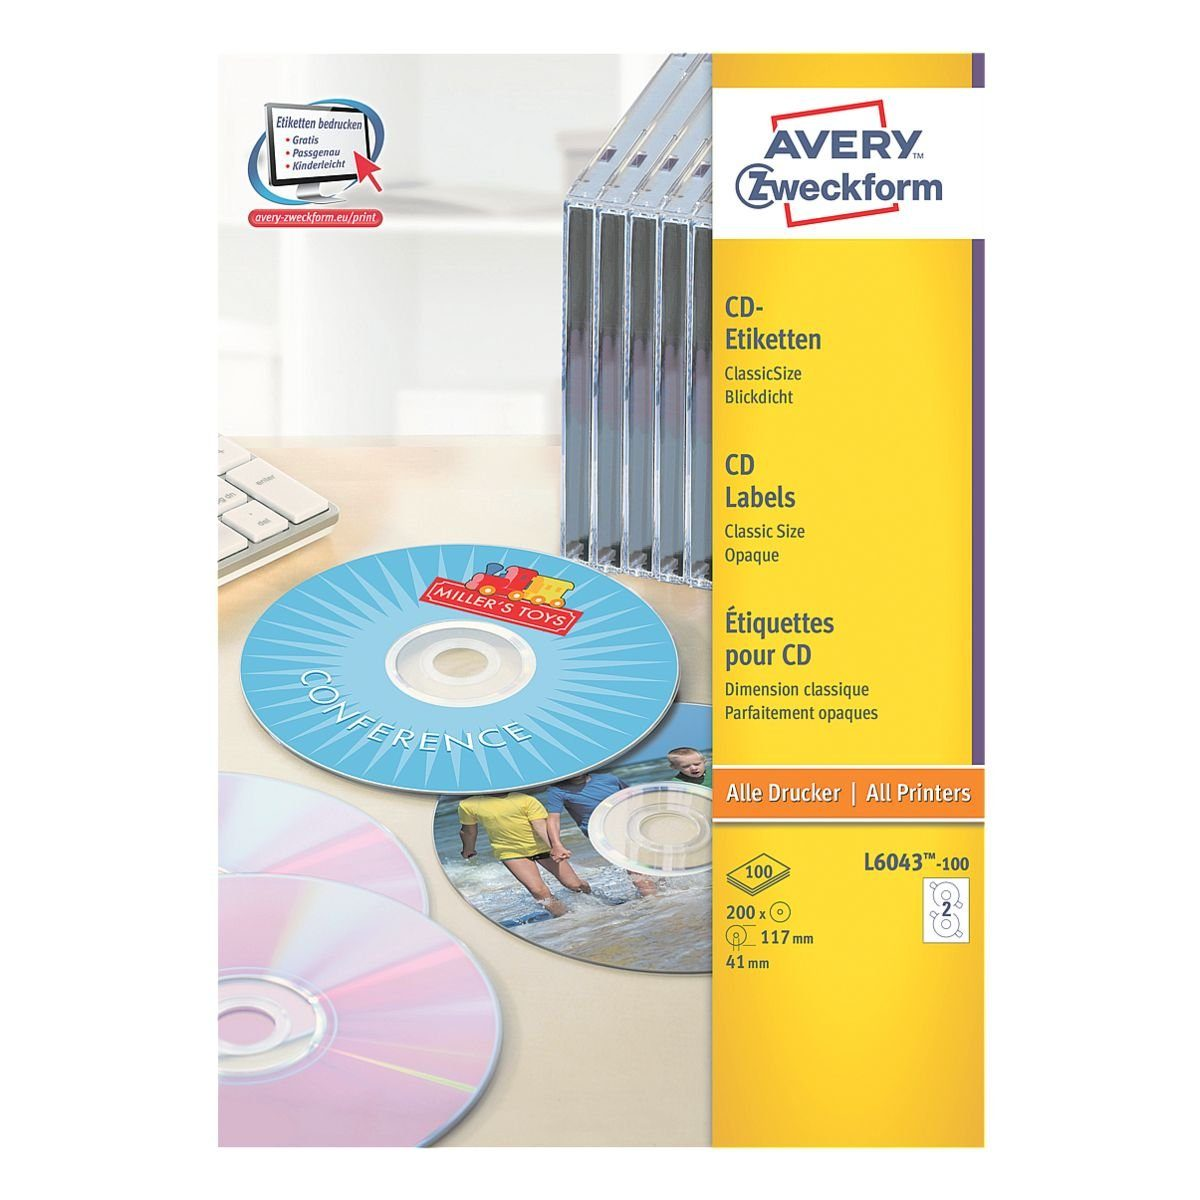 ZWECKFORMAVERY 100er-Pack CD-/DVD-Label »L6043-100«